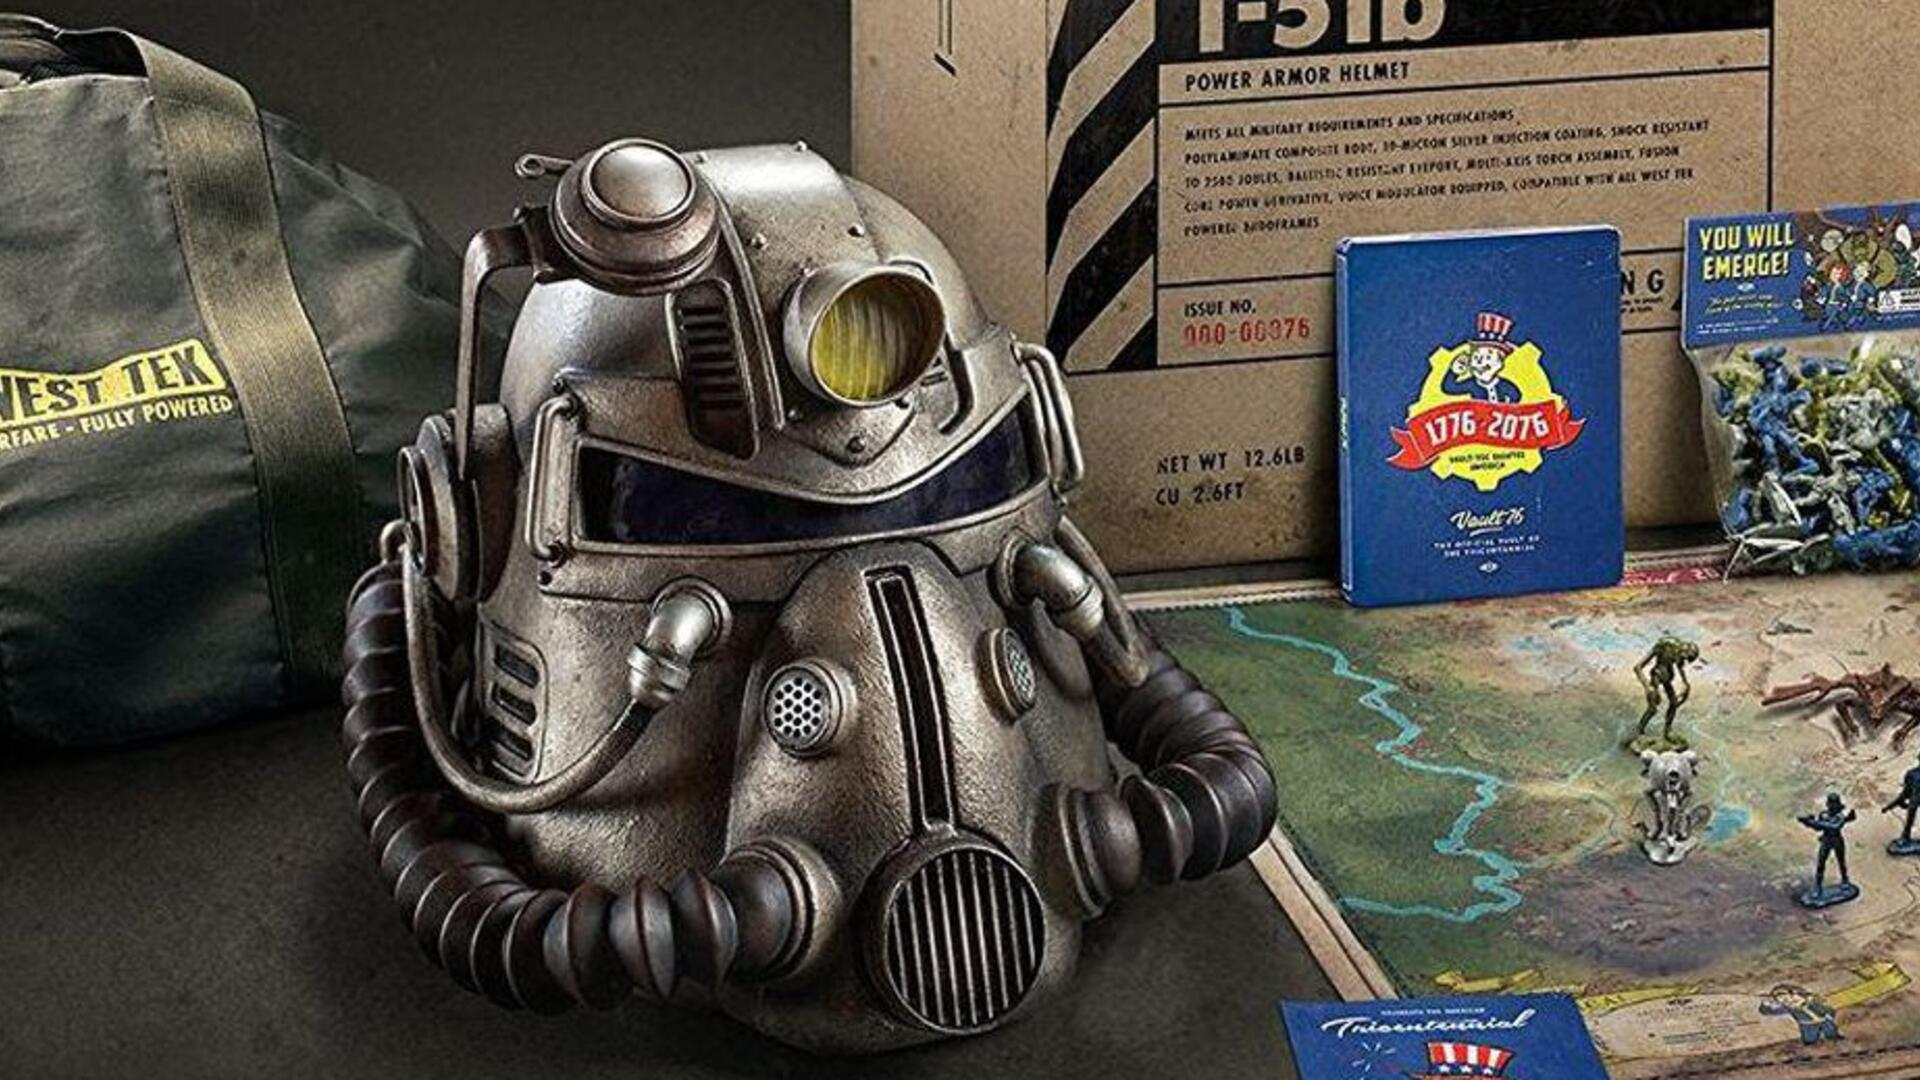 After Six Months, Fallout 76 Players are Finally Getting a Canvas Bag